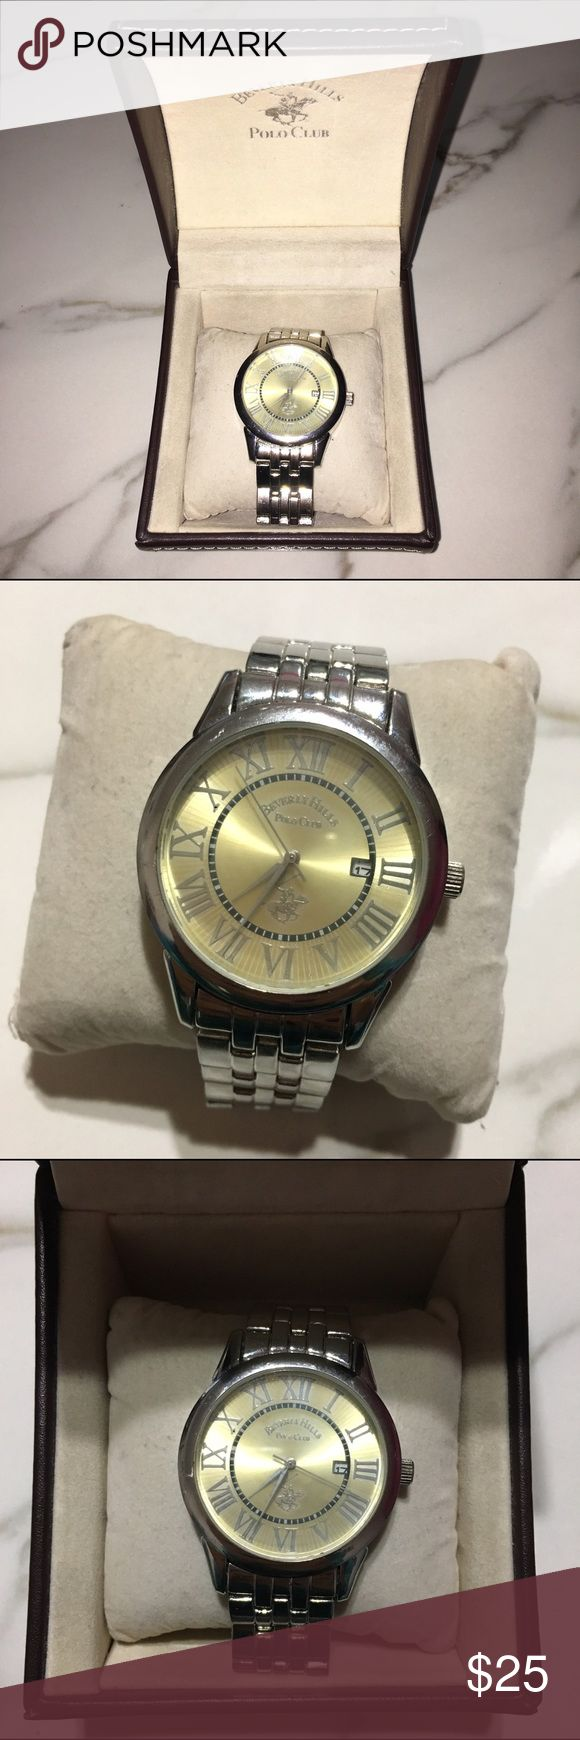 Beverly Hills Polo Club Polo Watch Beverly Hills Polo Club Polo Watch in great condition in original packaging! Details are shown in pictures above. Beverly Hills Polo Club Accessories Watches